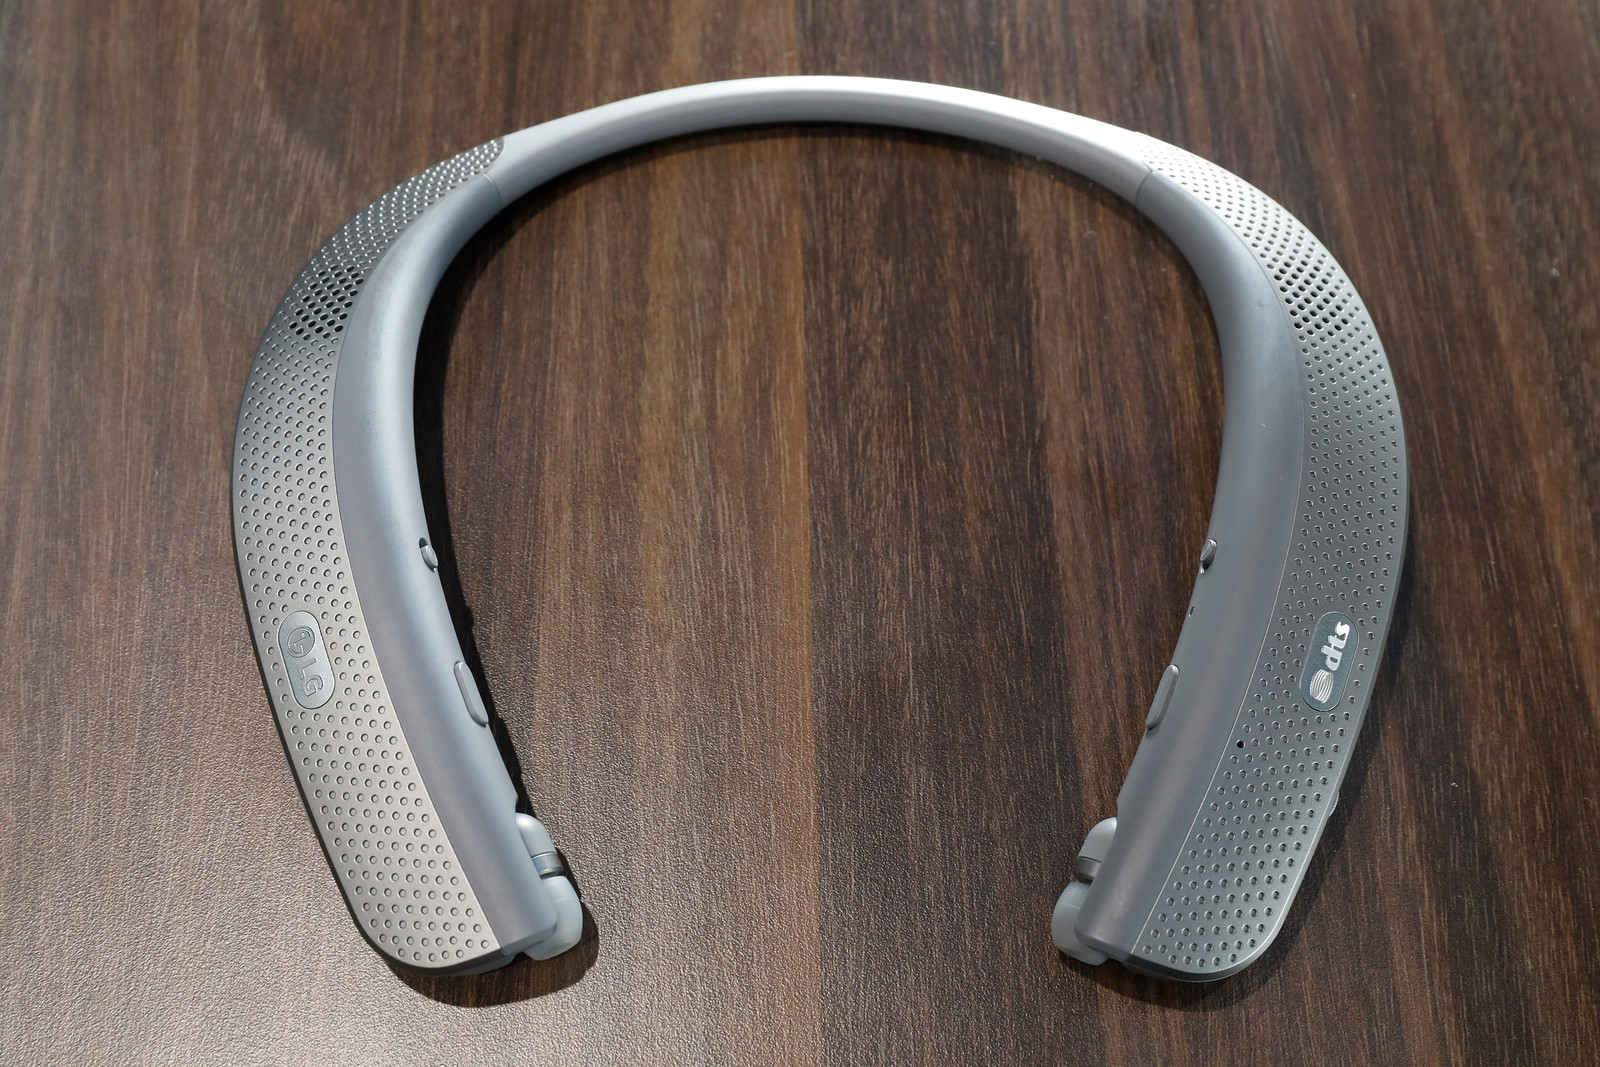 Close-up view of LG TONE Flex Premium Bluetooth headset on display at LG's CES 2017 booth